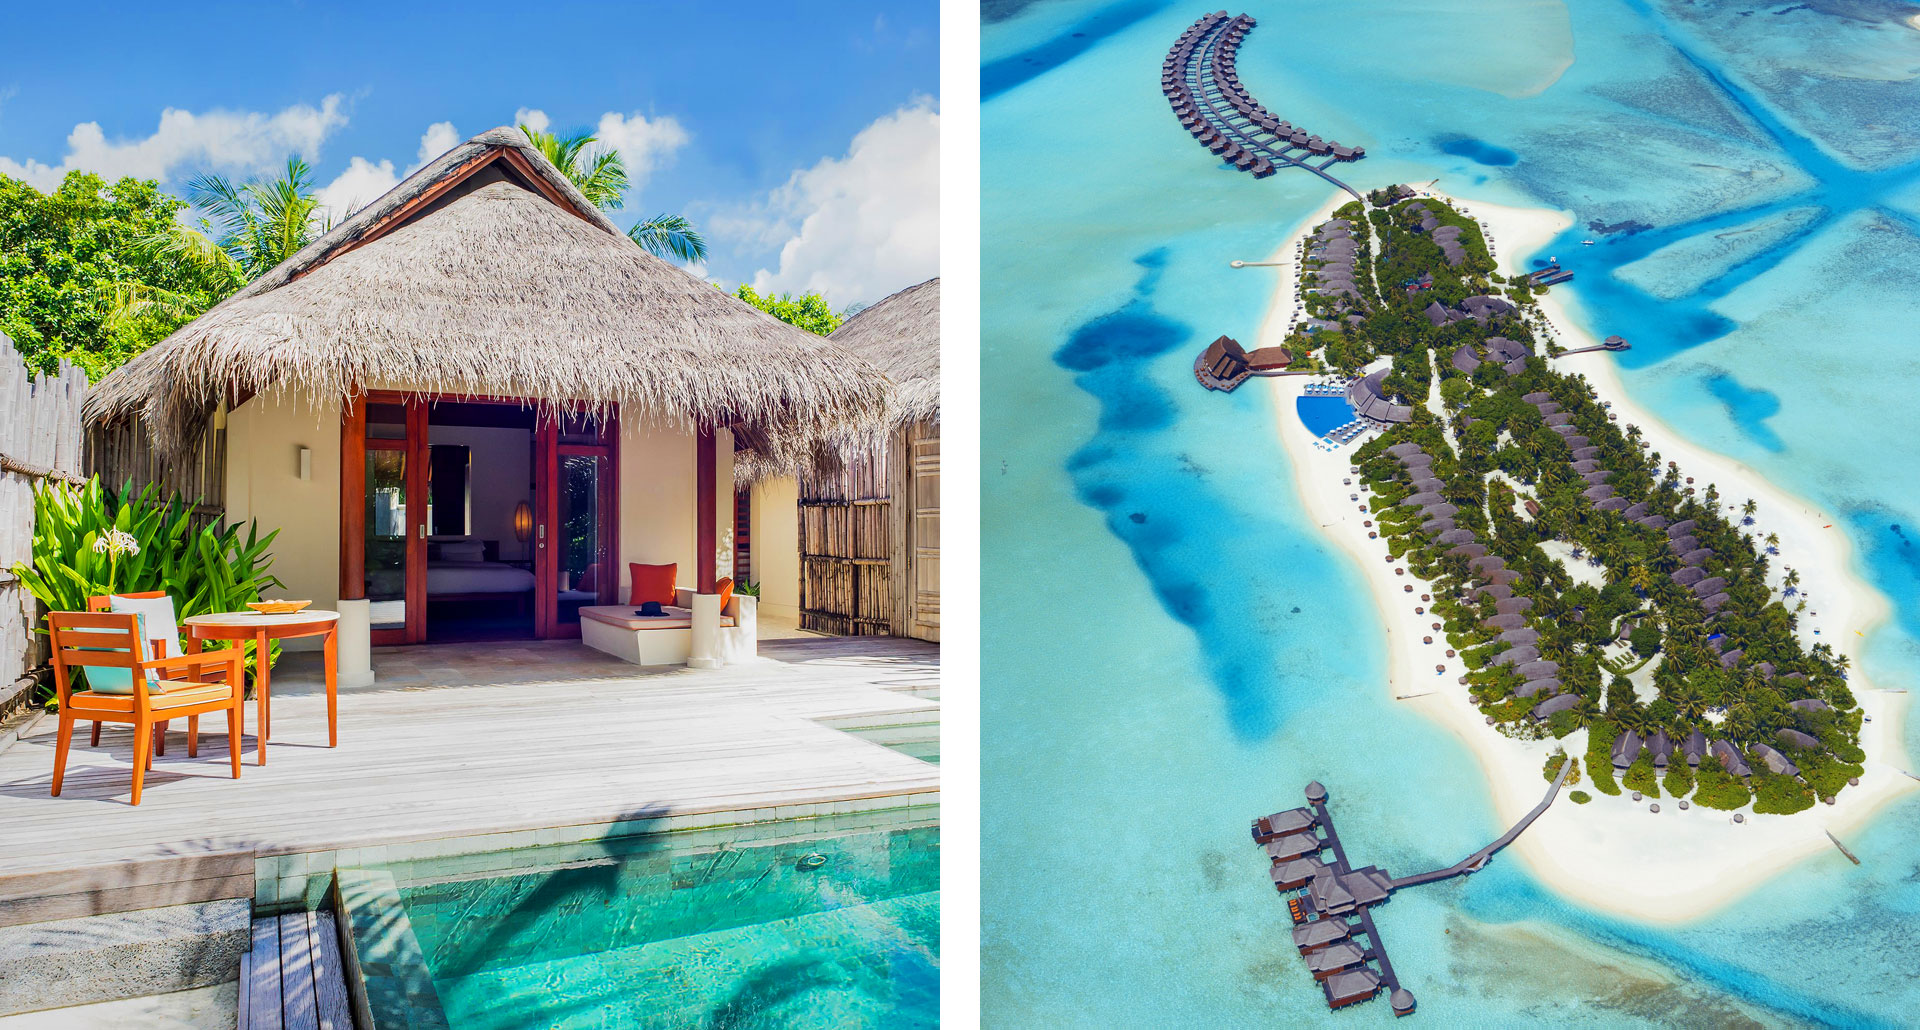 Anantara Dhigu Resort - boutique hotel in Maldives